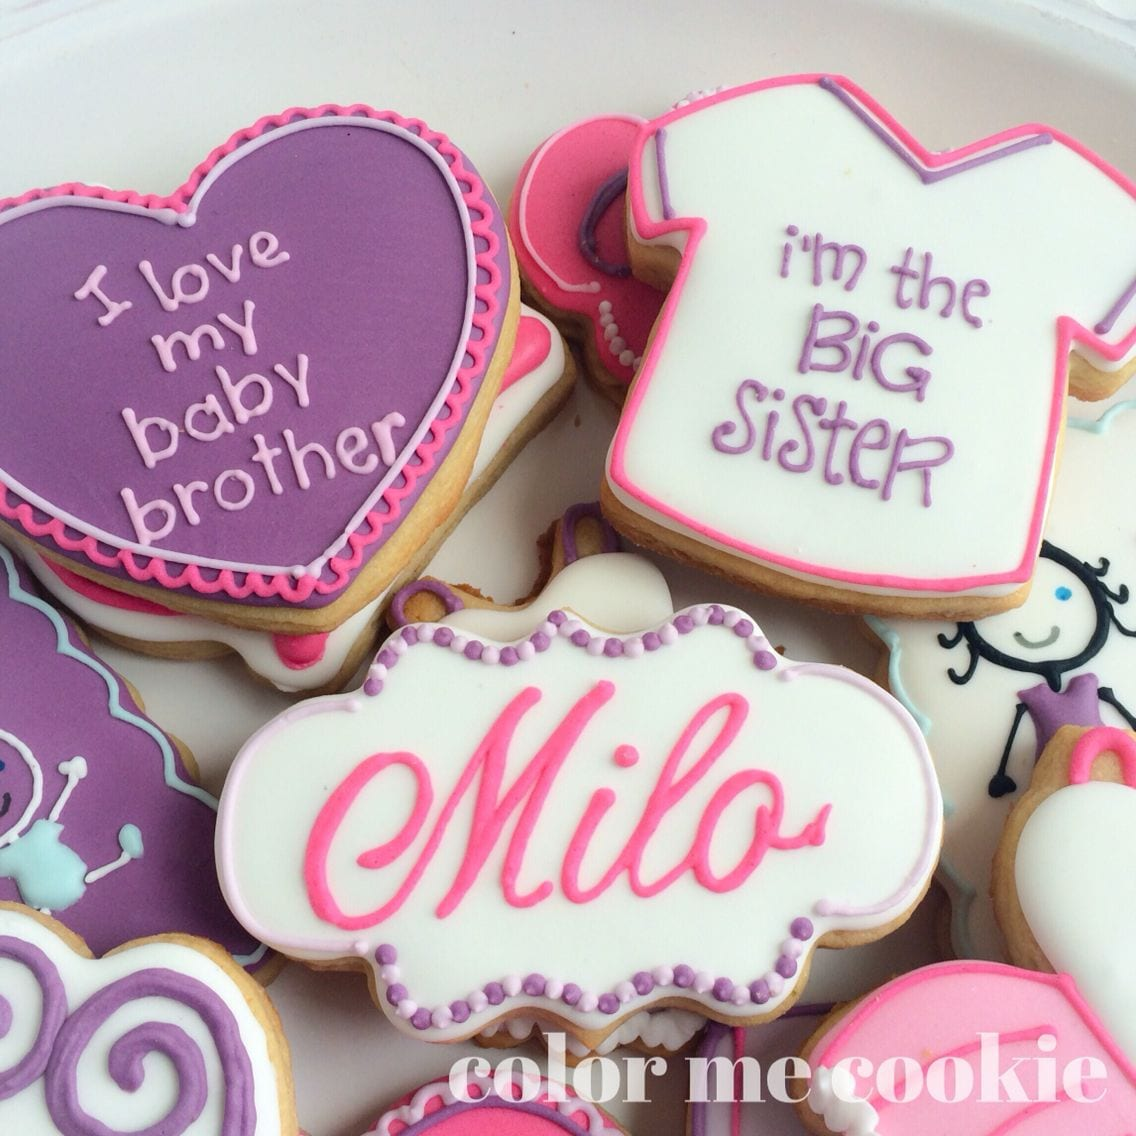 Big Sister Cookies Made By Color Me Cookie  Www Colormecookie Com